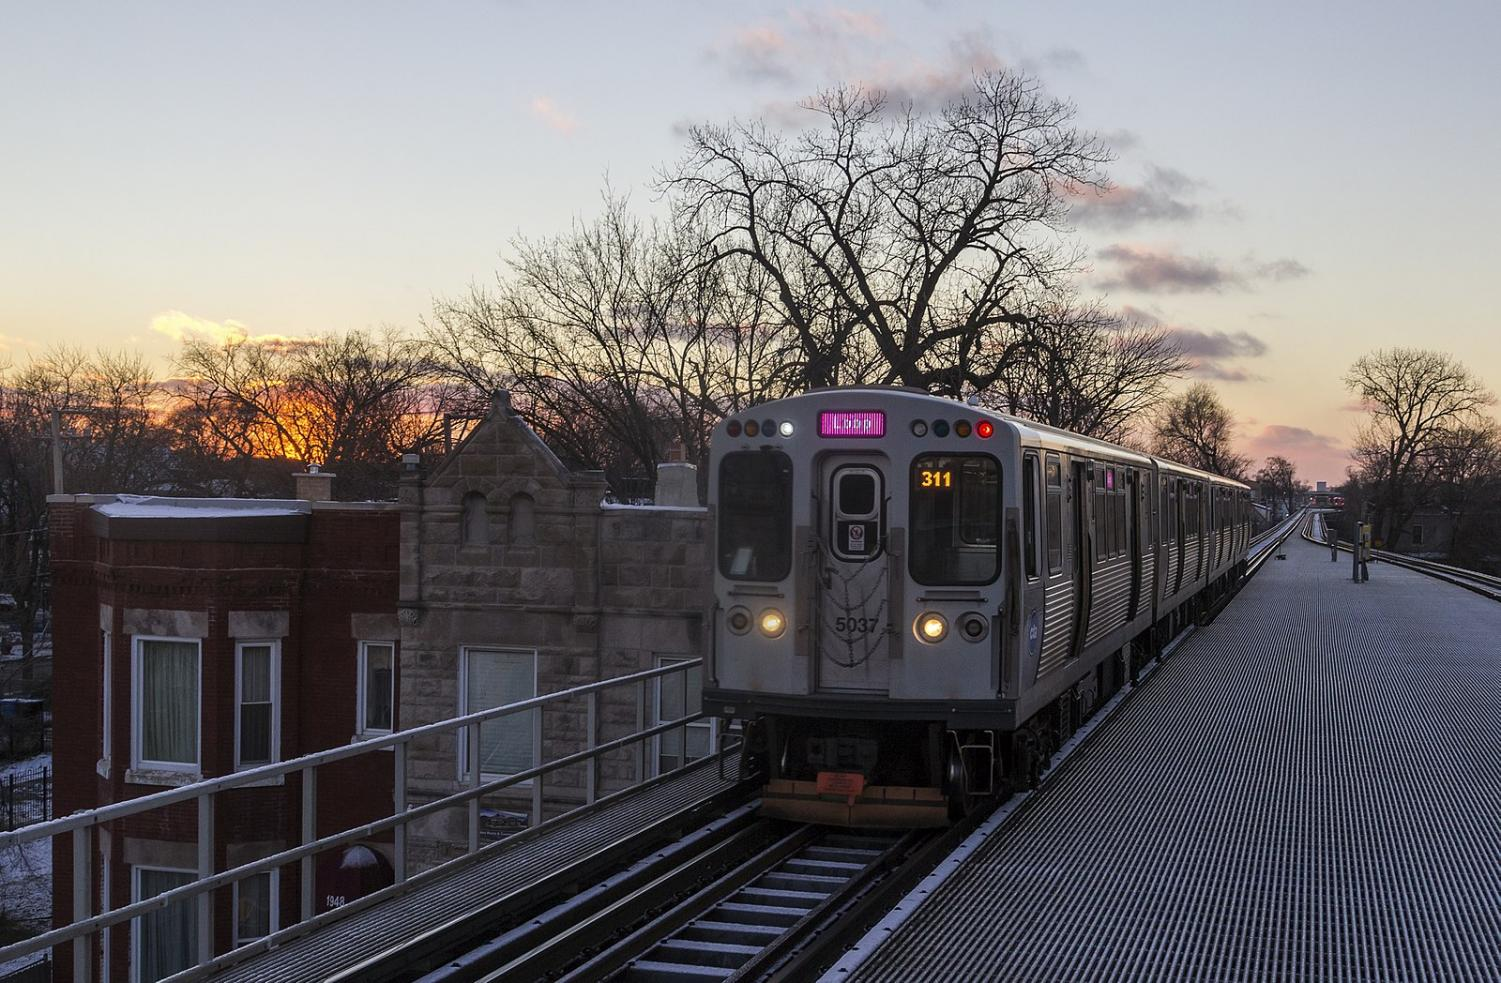 A Loop-bound Pink Line train makes it way into the Kedzie station in the Norht Lawndale neighborhood. The neighborhood has seen effects from the 606 trail.